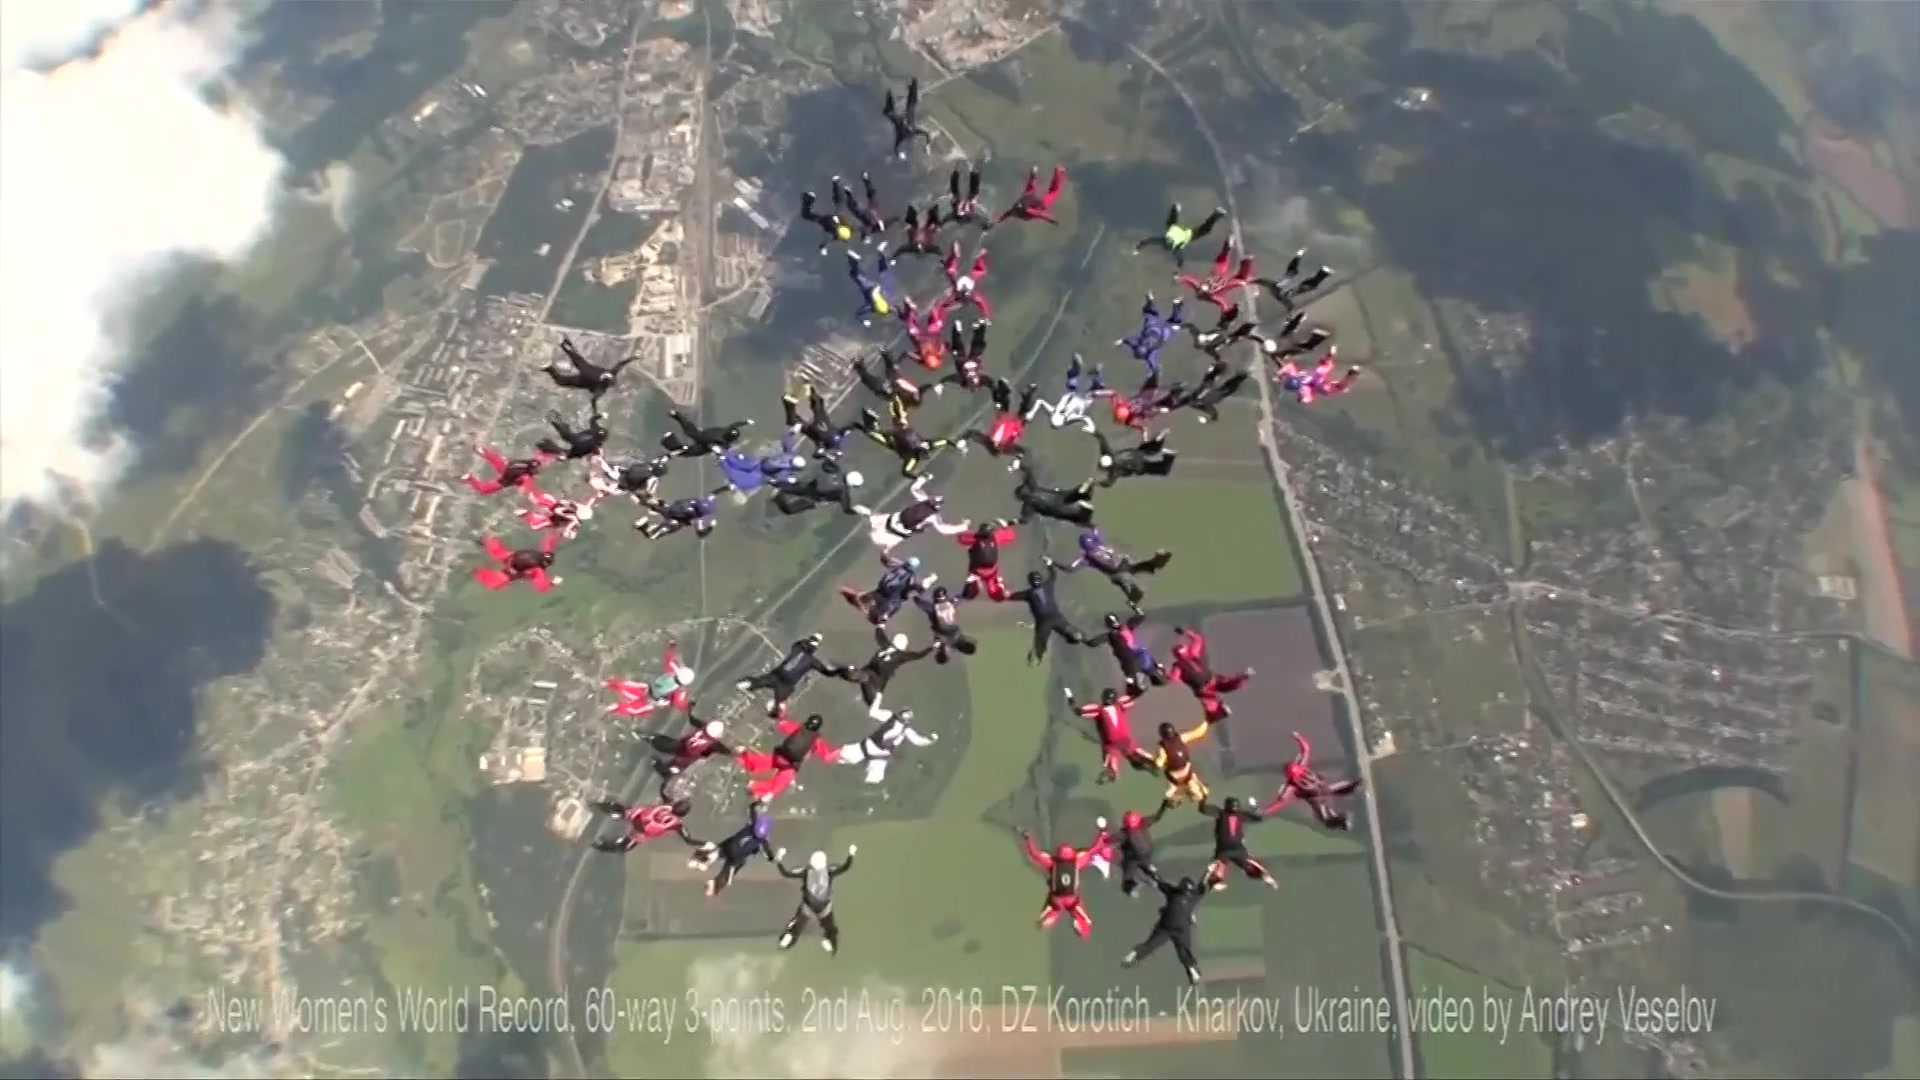 57 female skydivers made three formations above Ukraine